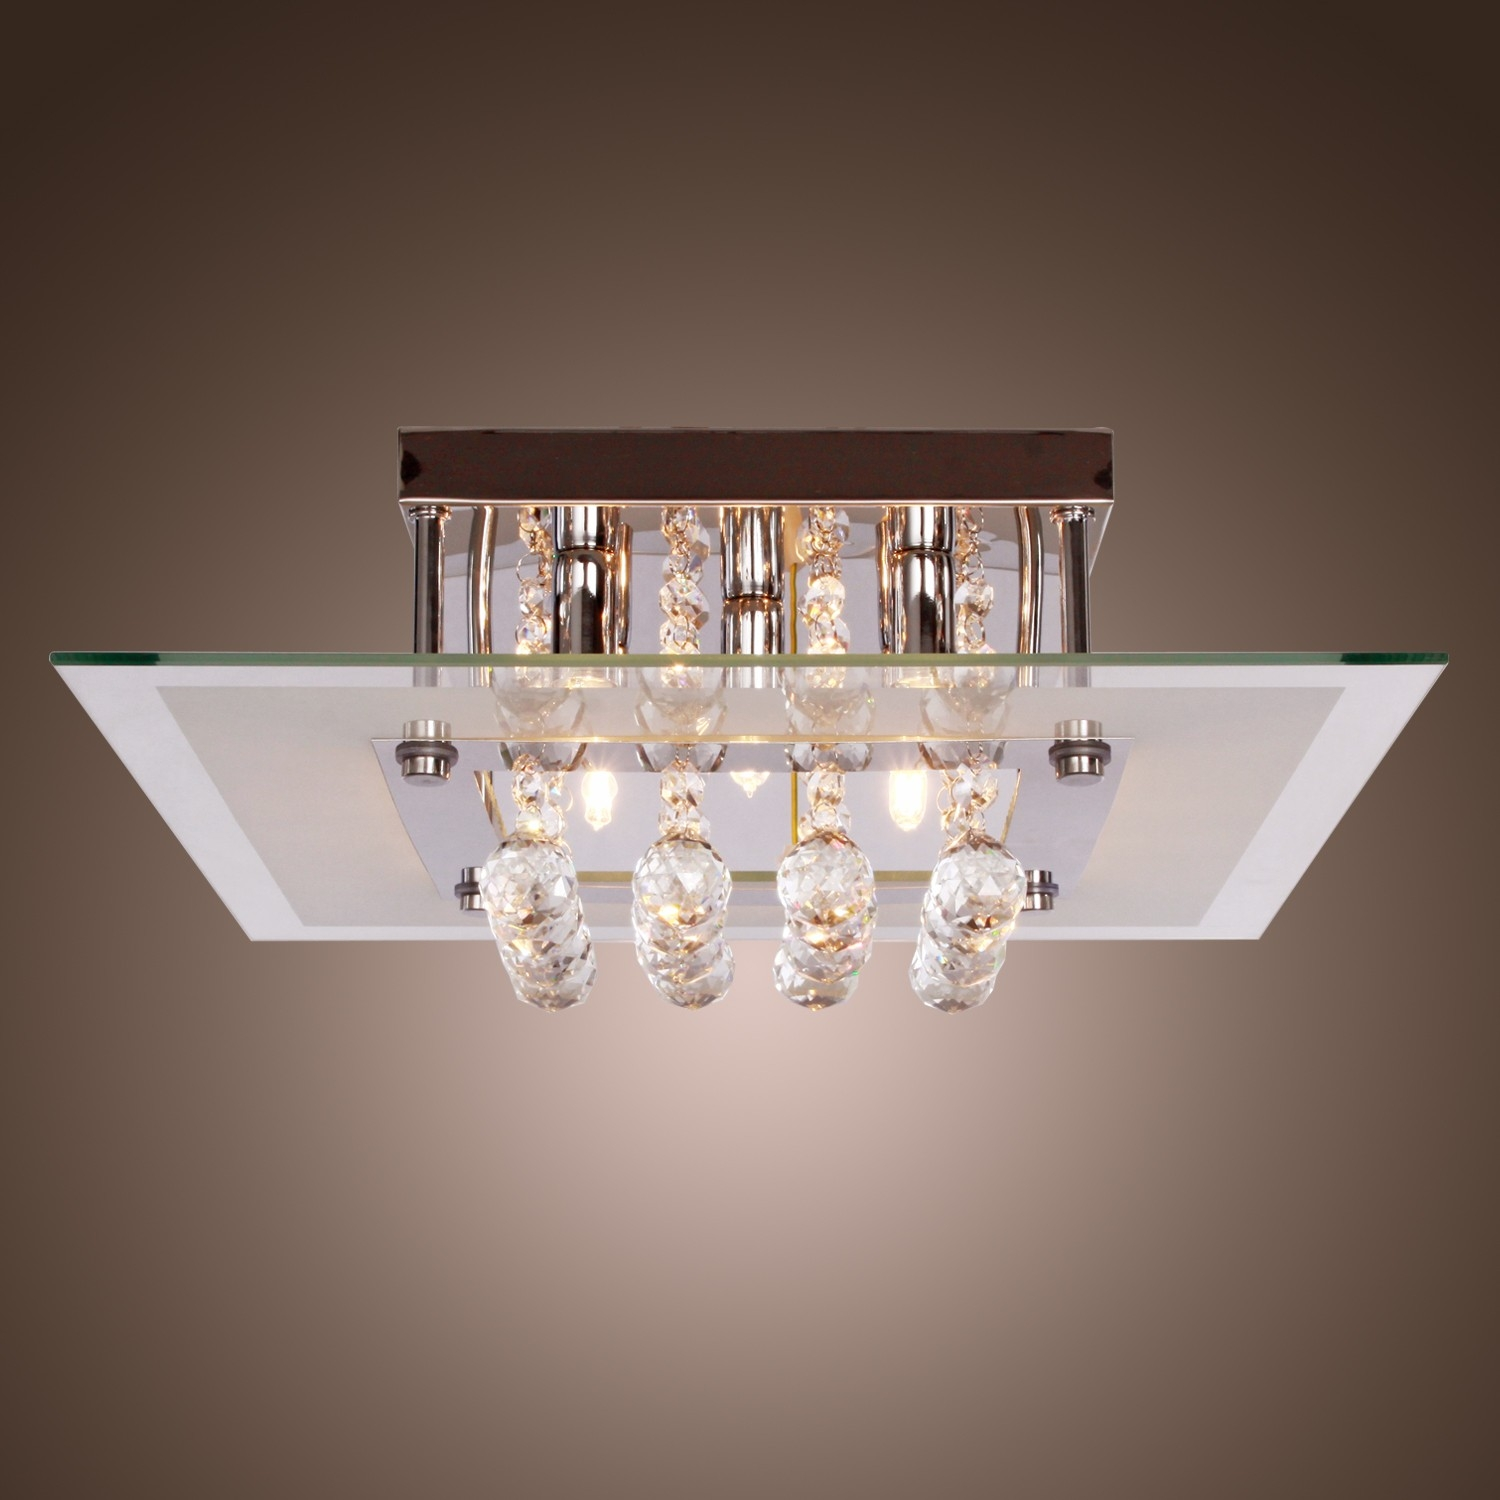 Comtemporary Crystal Drop Flush Mount Lights With 5 Lights In With Modern Light Chandelier (View 8 of 15)